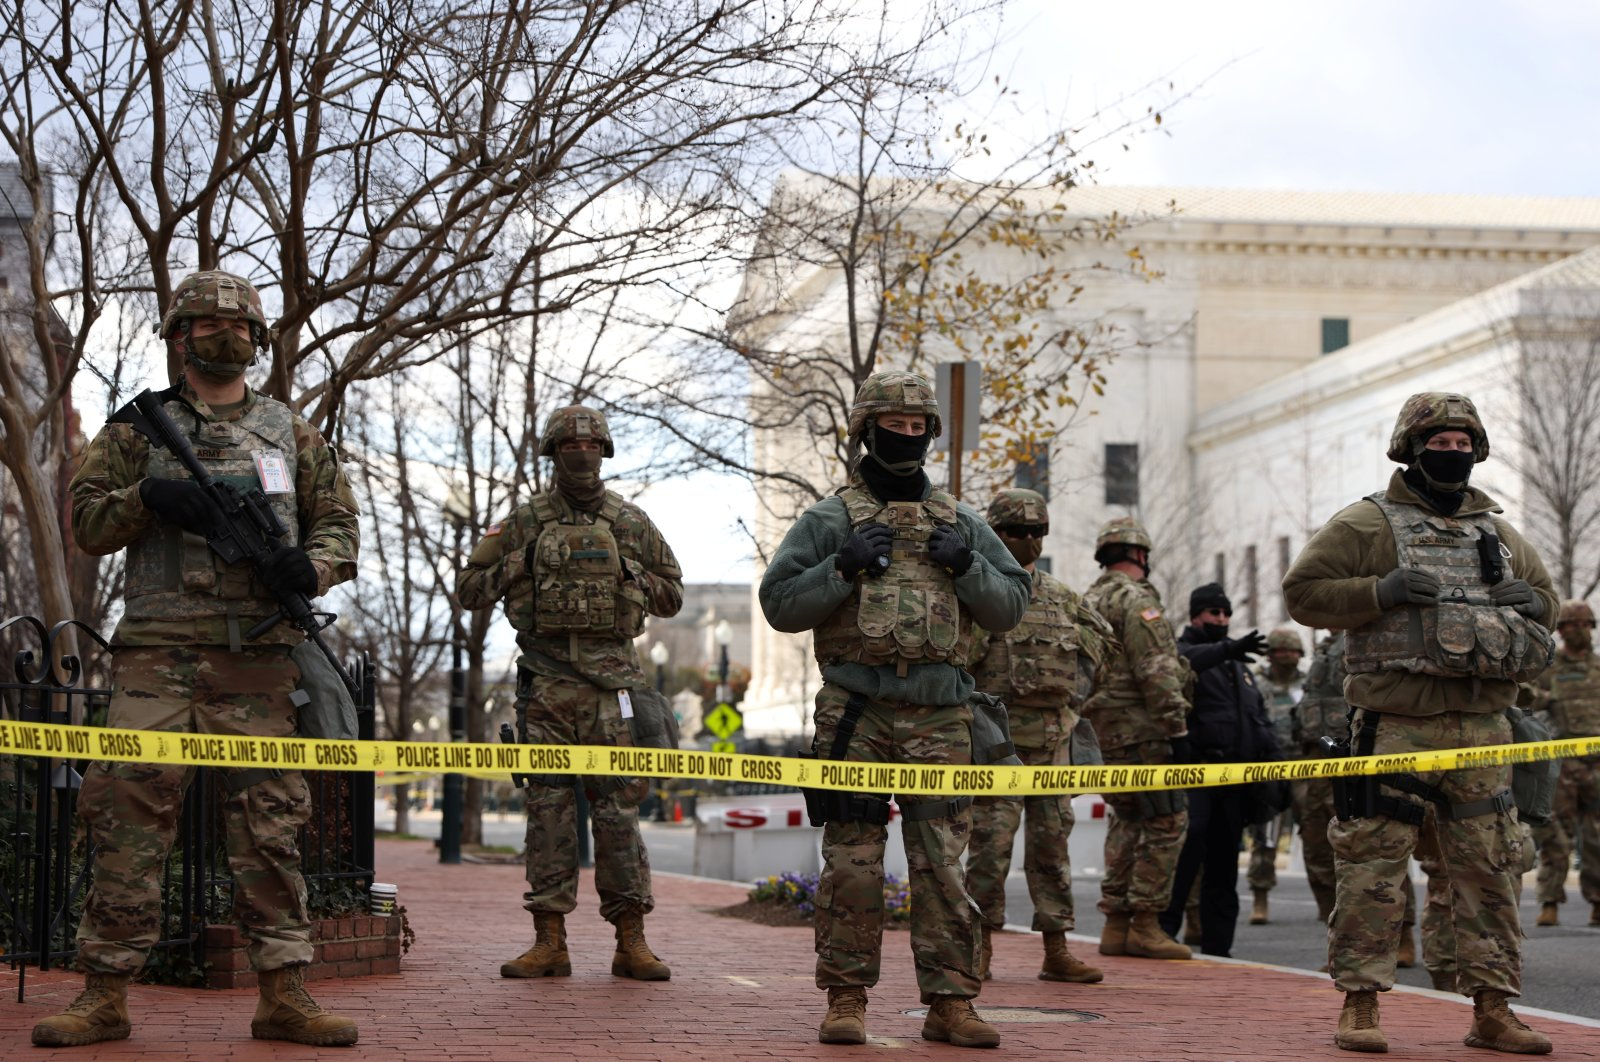 Members of the National Guard stand watch wearing helmets in front of the Supreme Court after reports of a bomb threat circulated hours before President-elect Joe Biden's inauguration as the 46th President of the United States, in Washington D.C., U.S. Jan. 20, 2021. (REUTERS Photo)